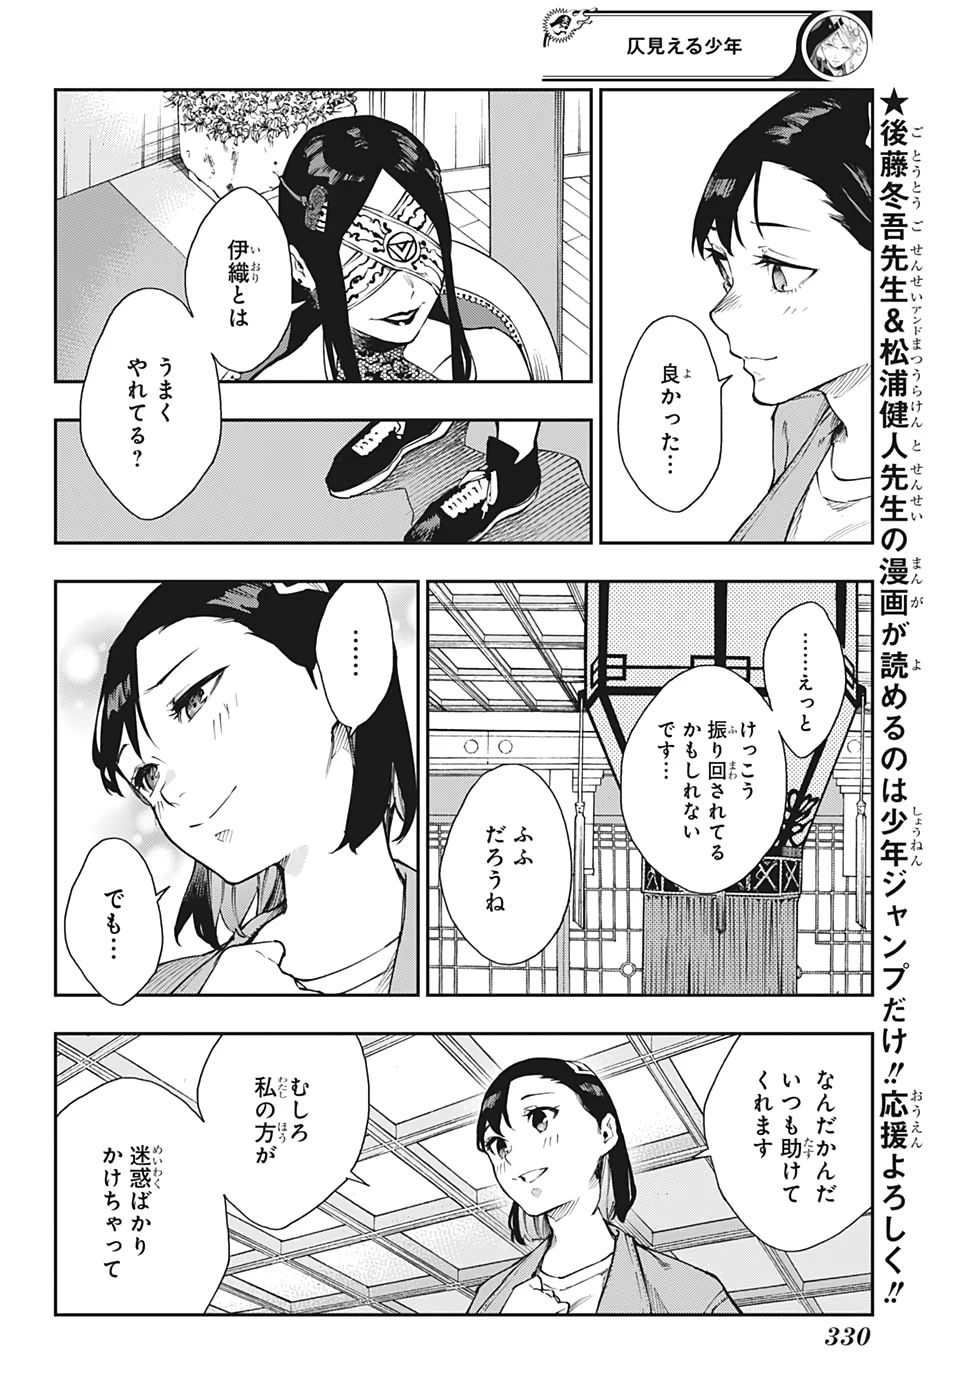 Manga Raw Hono Mieru Shonen Chapter 08